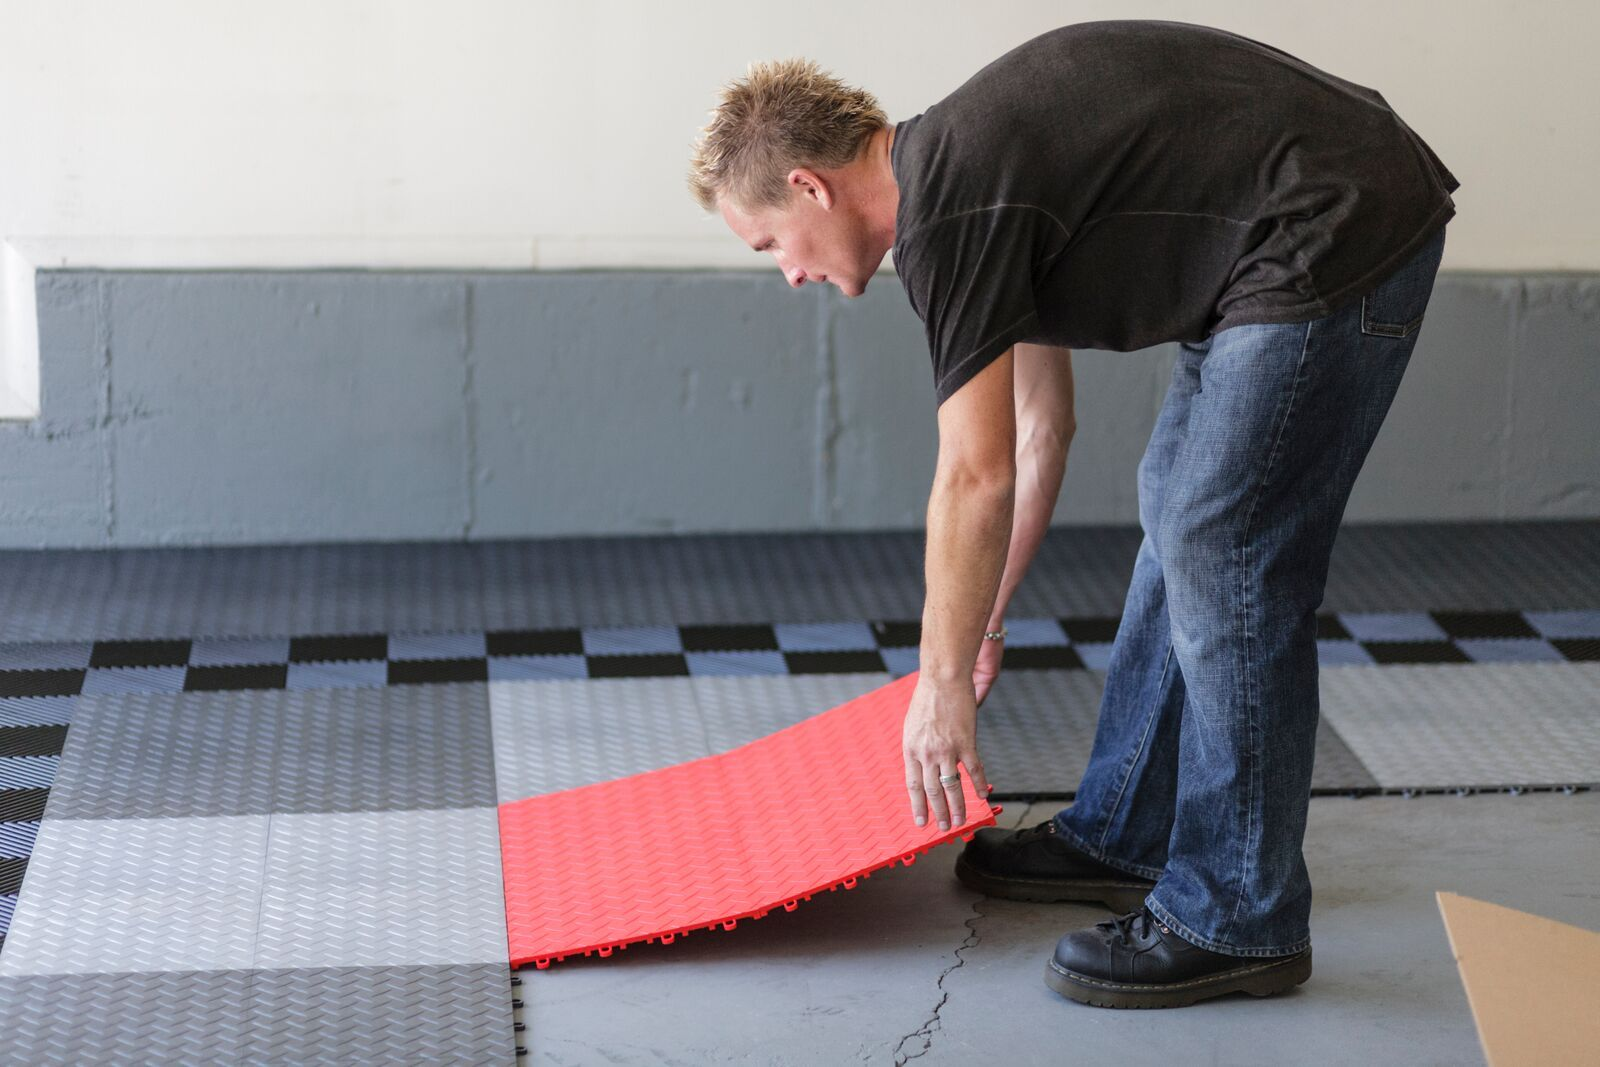 Race Deck Interlocking Tiles Simply Snap Together Mix Colors For